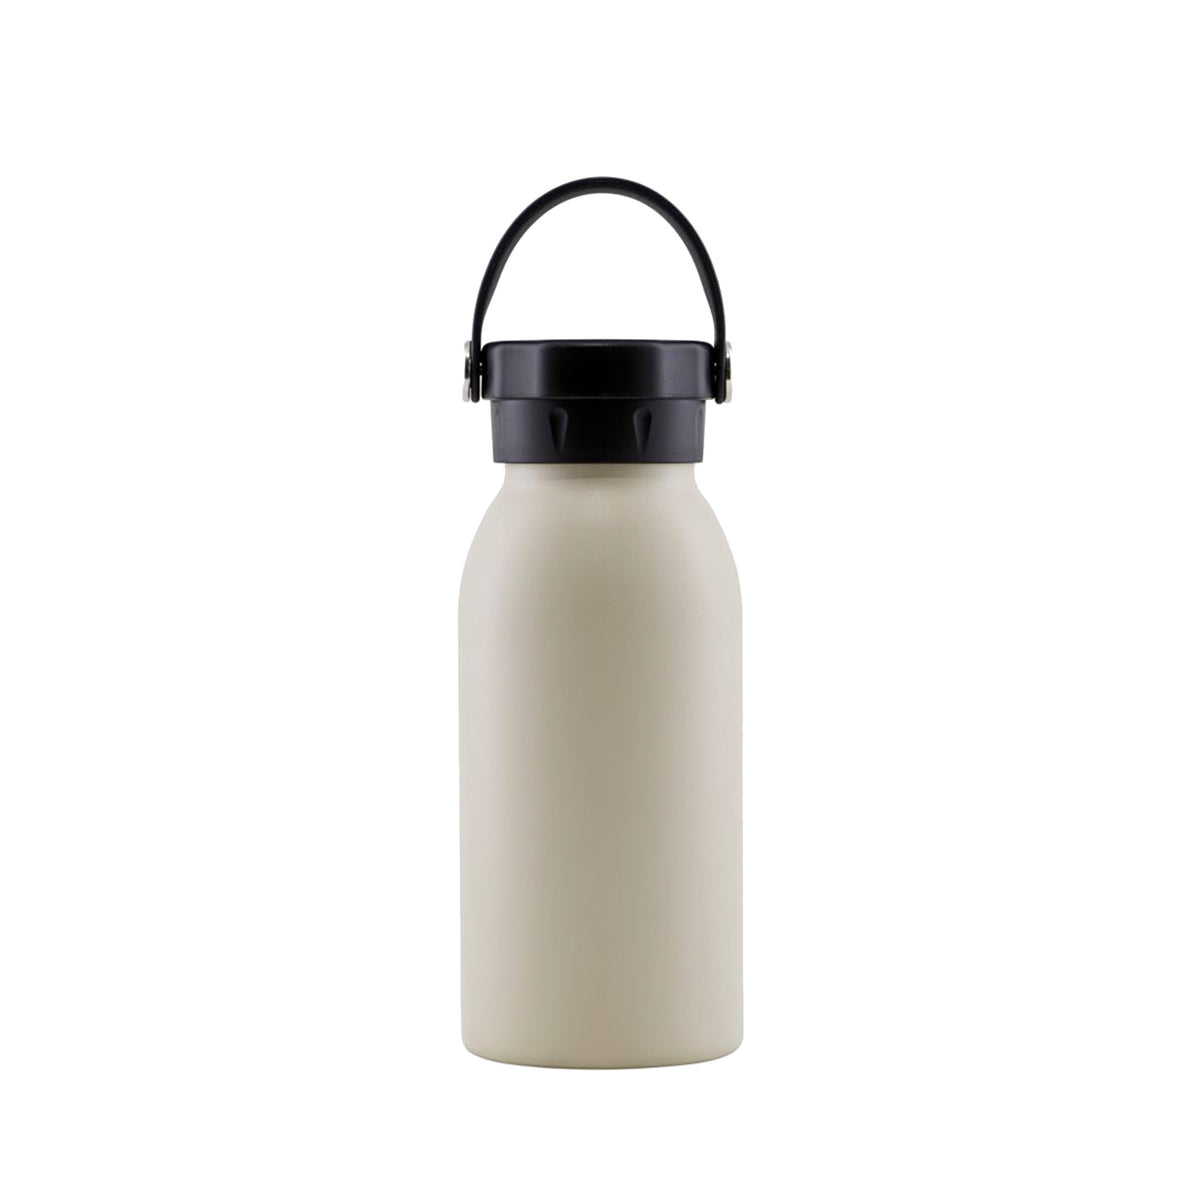 House Doctor Thermos Corh Beige Small - Scandi Minimal